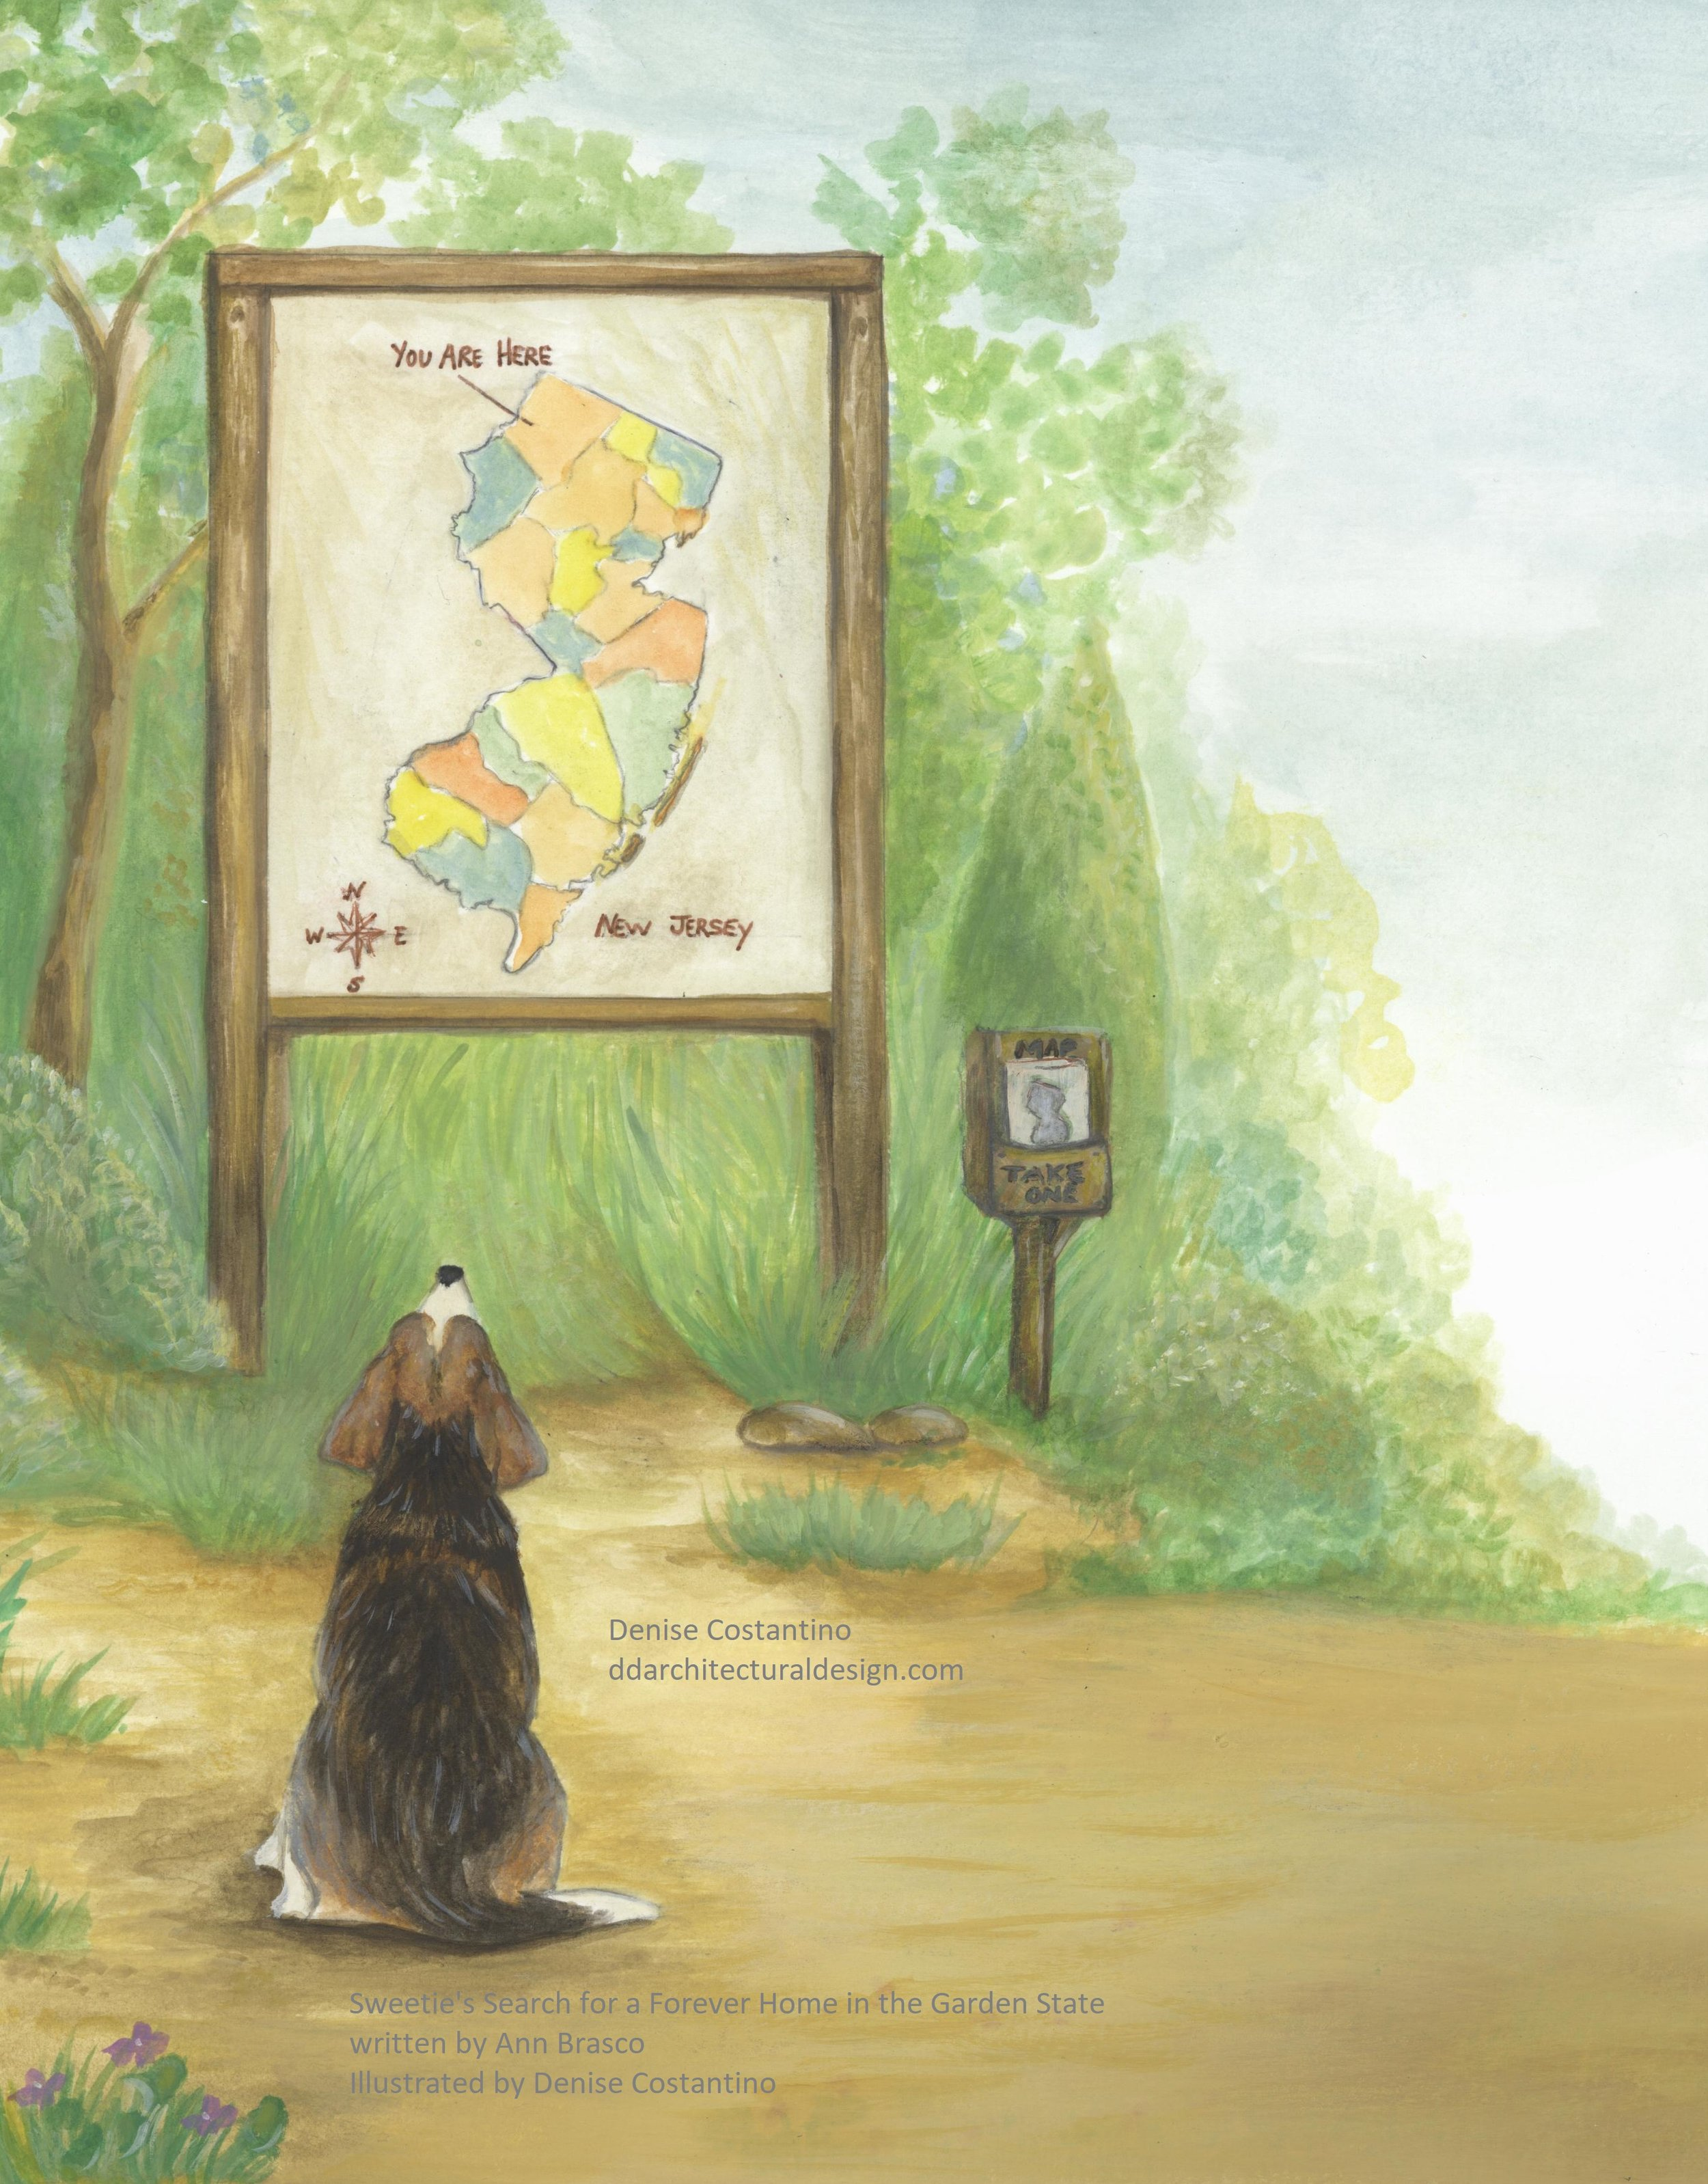 Sweetie with Map